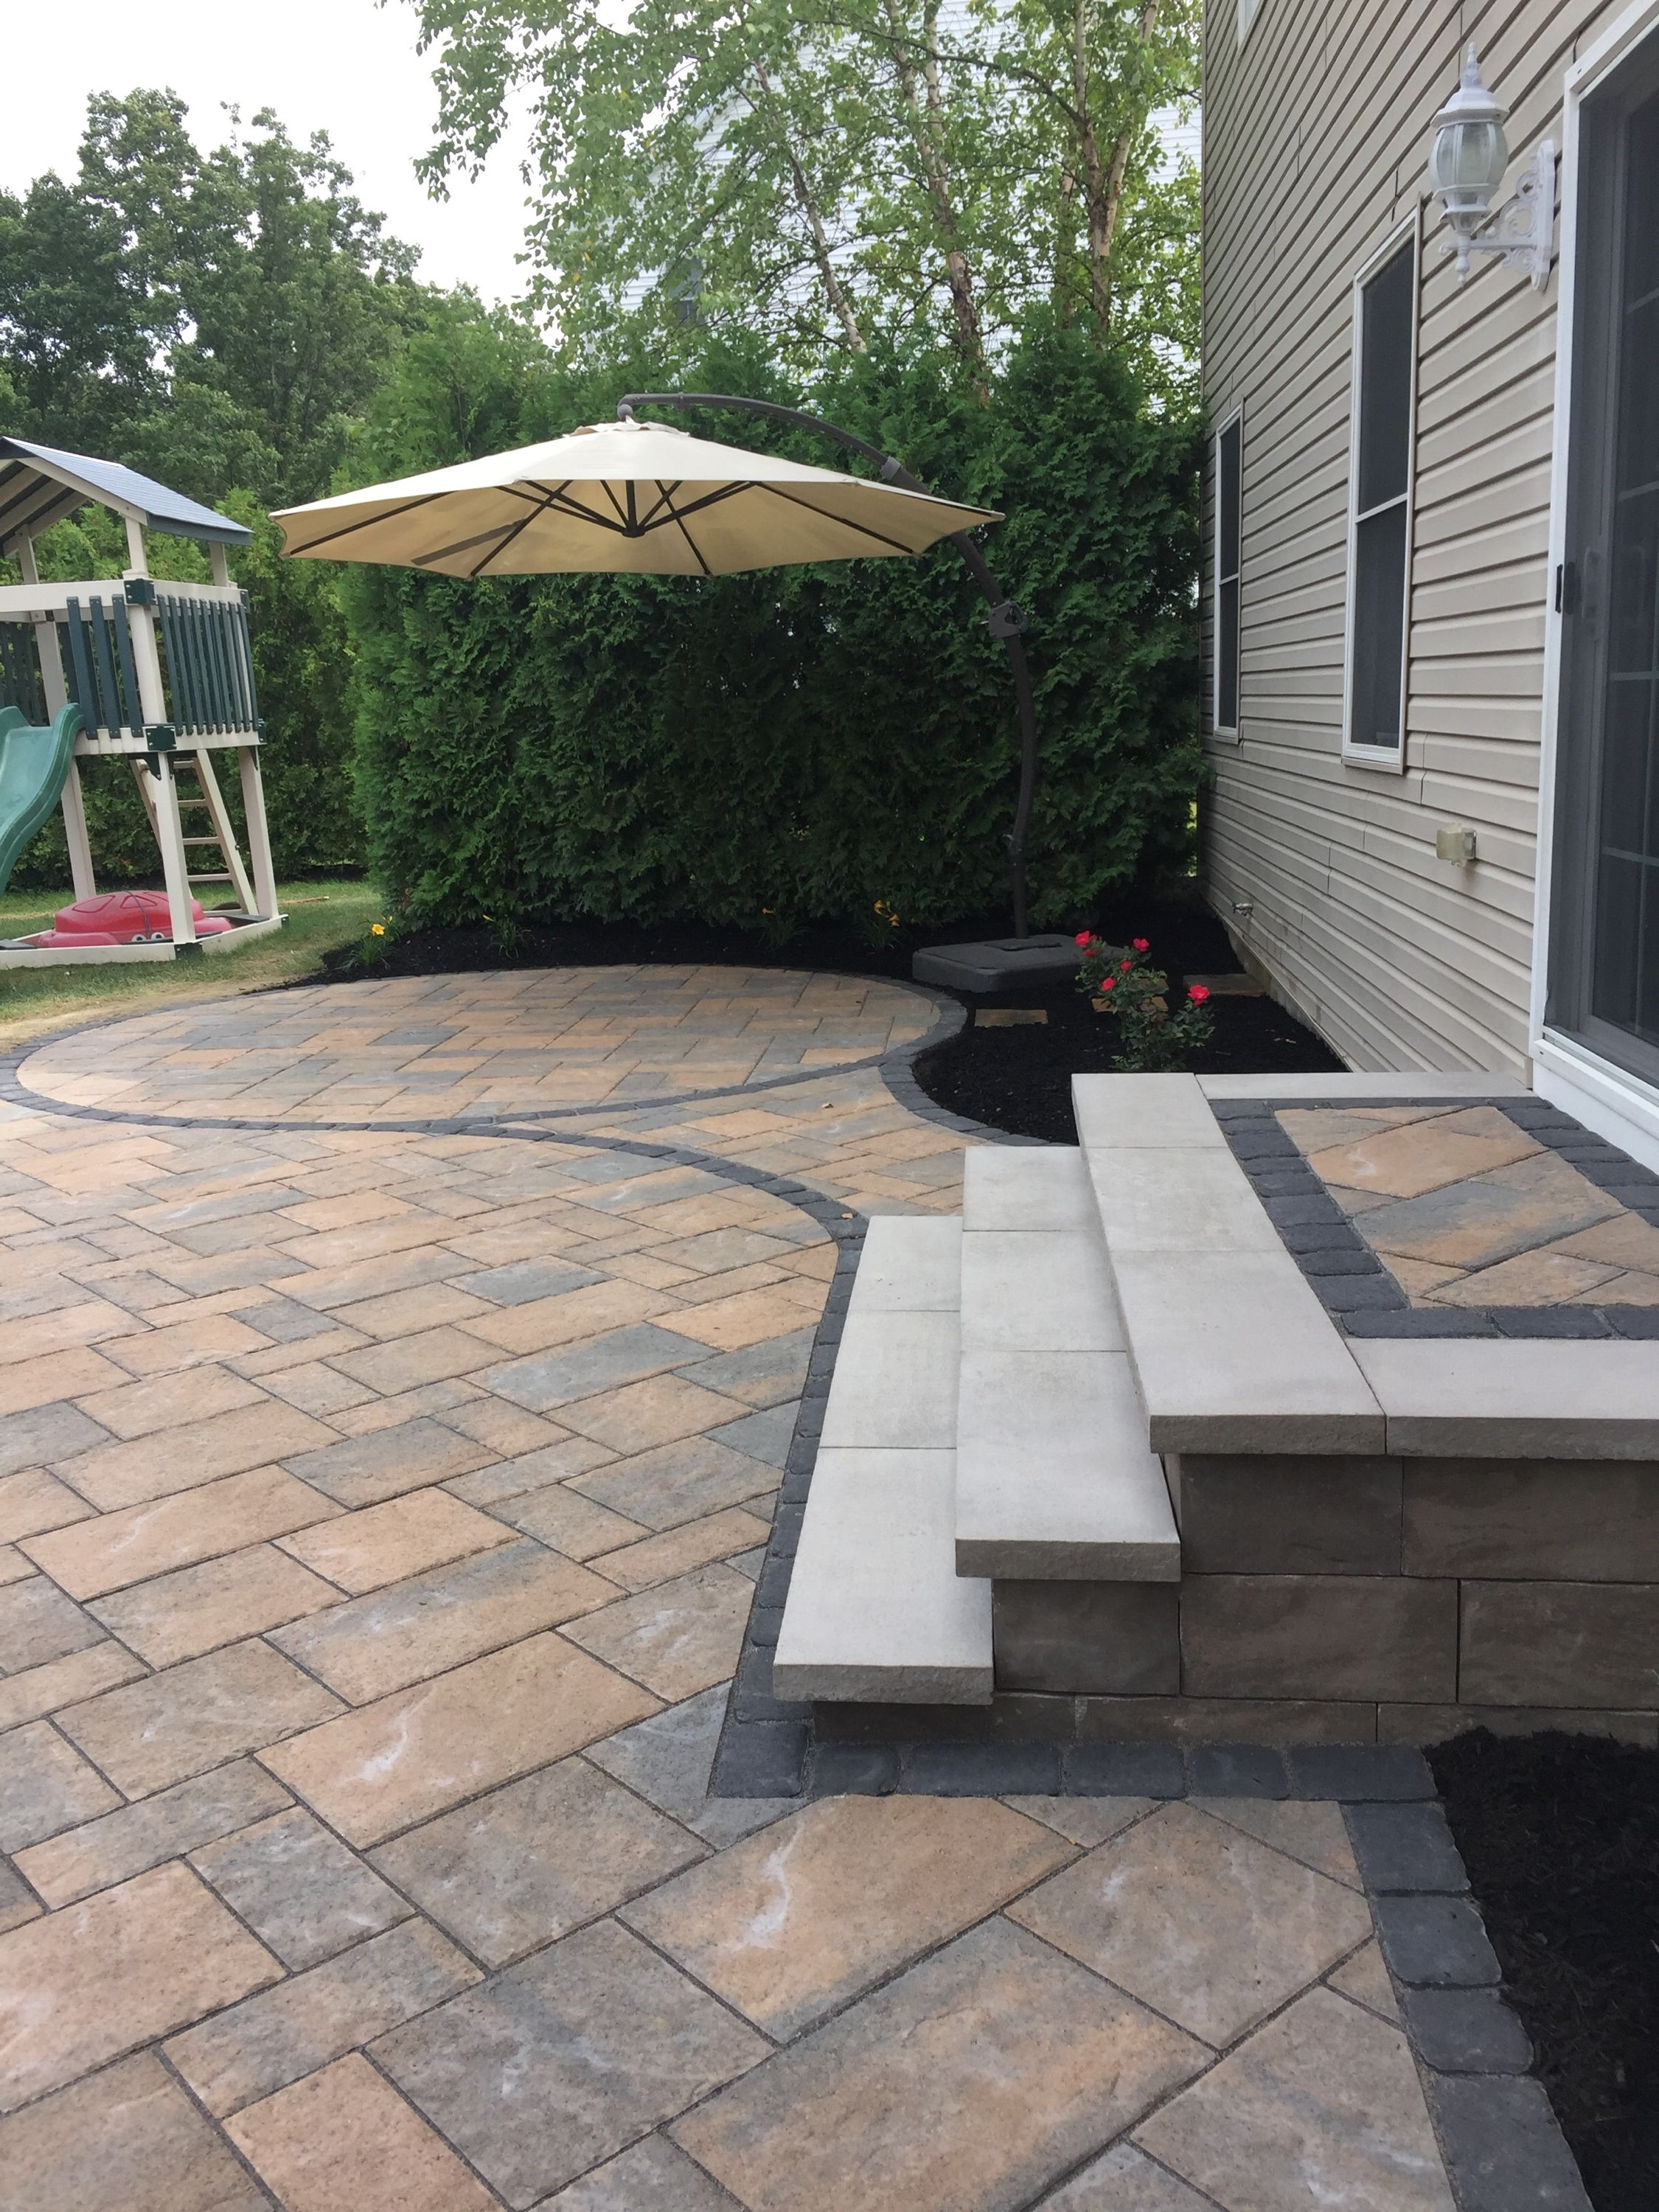 square paver patio with fire pit. 600sf Paver Patio With A Square 120K BTU Natural Gas Fire Pit Completed In Erie Pa. Techo-bloc Material. Blu60mm Color Sandlewood, Villiagio